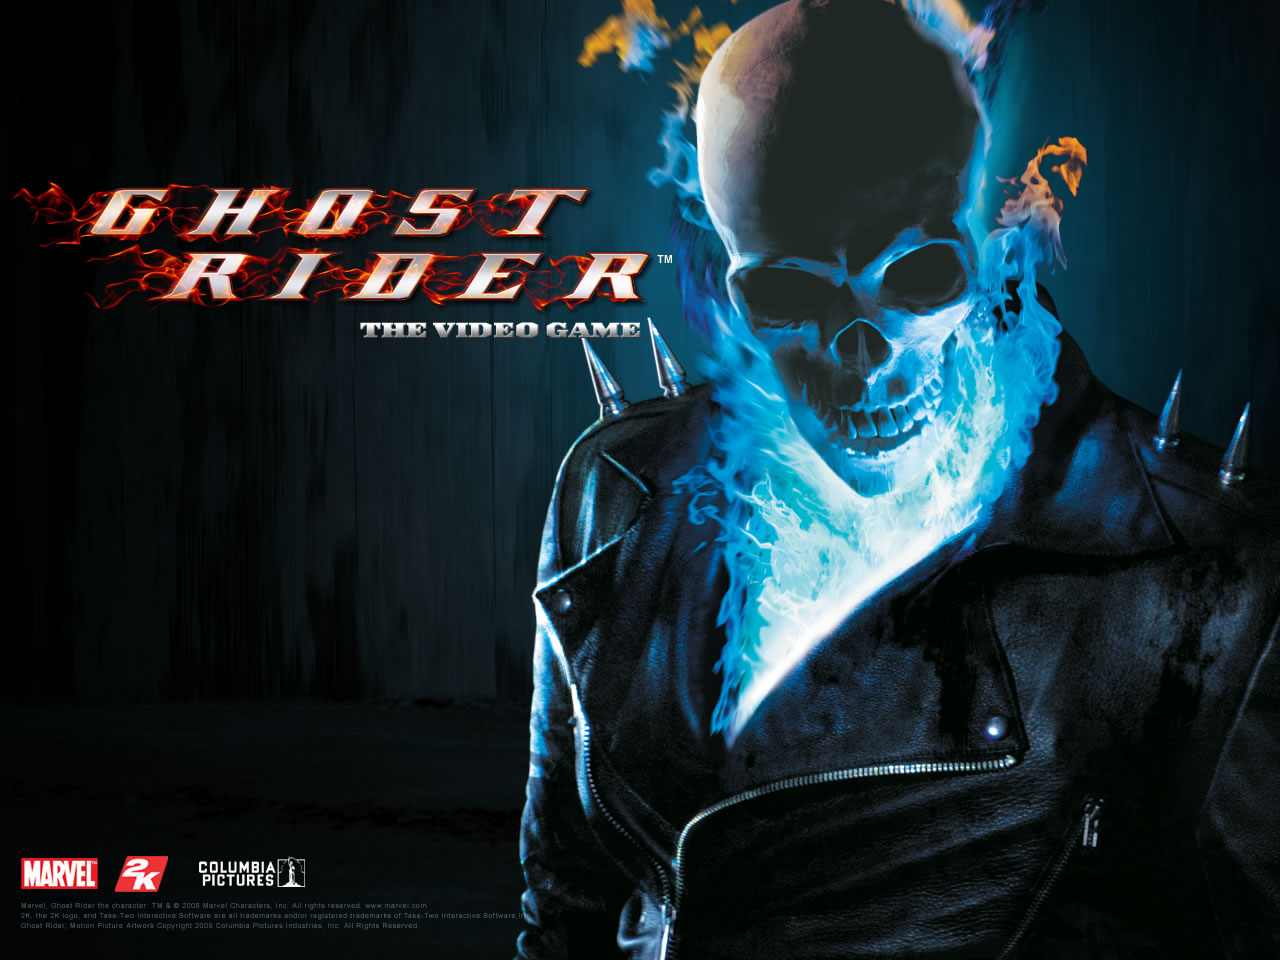 blaze ghost rider wallpaper johnny blaze wallpaper johnny blazejpg 1280x960